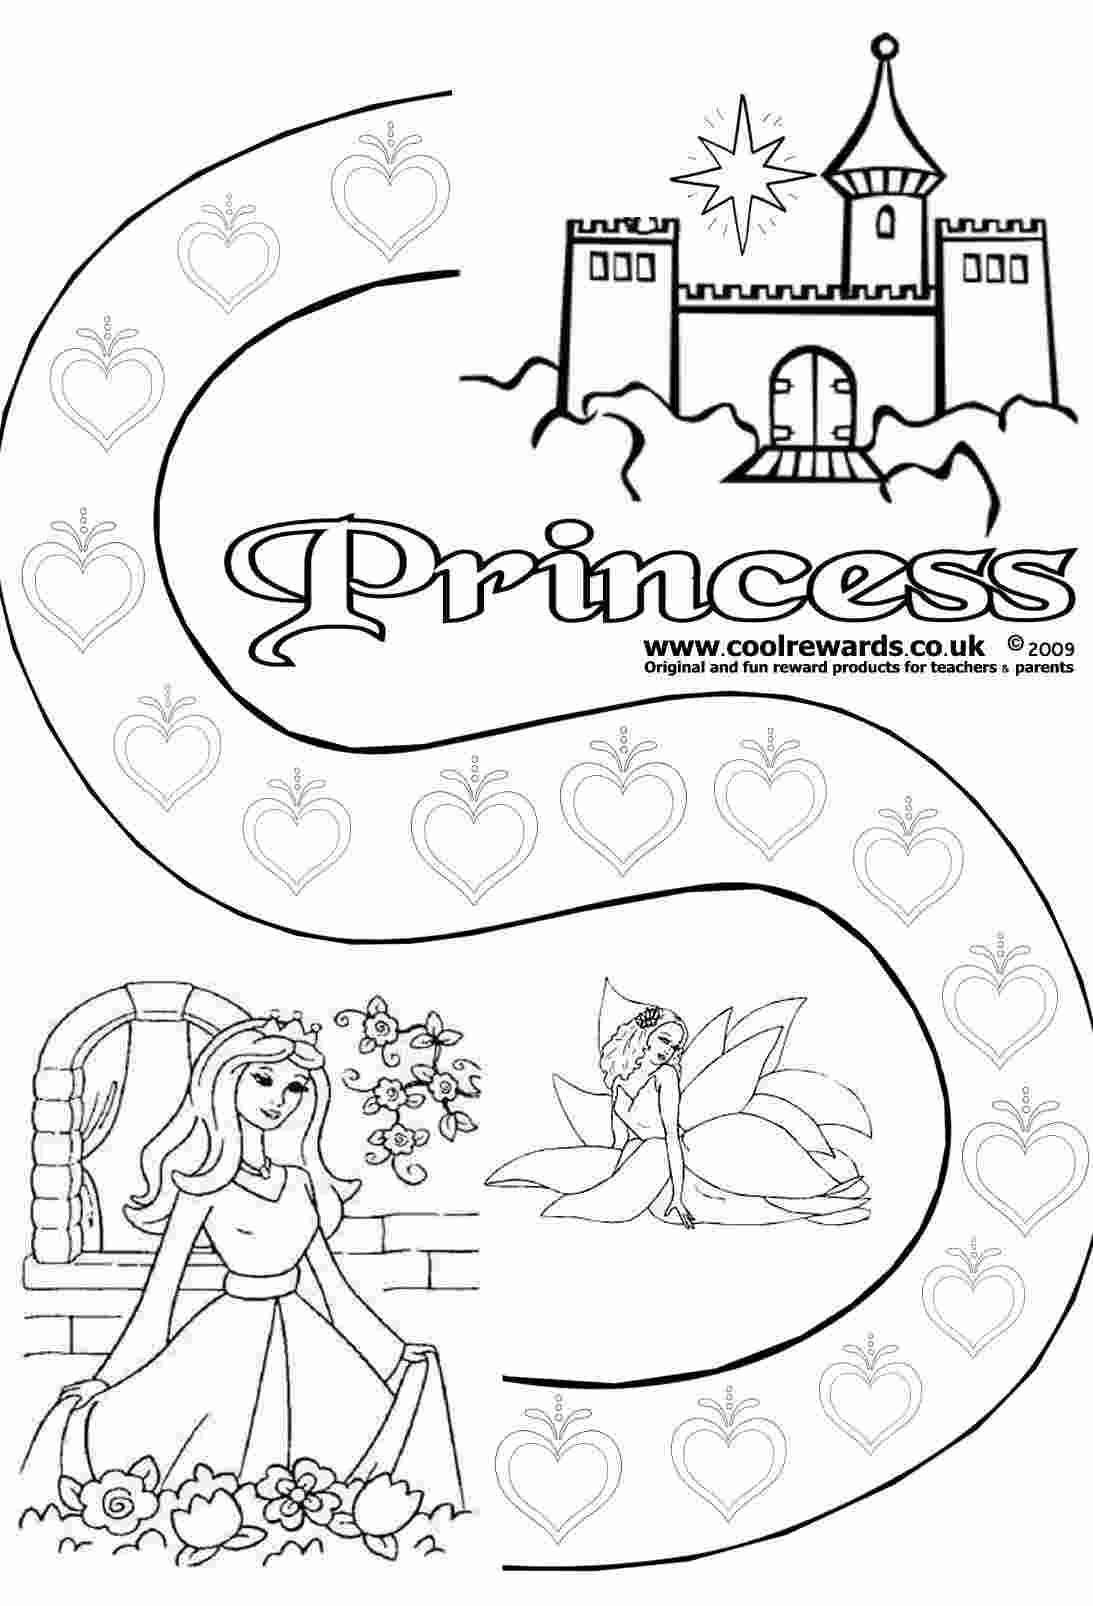 Free printable santa wish list coloring page tickled peach studio - Activities